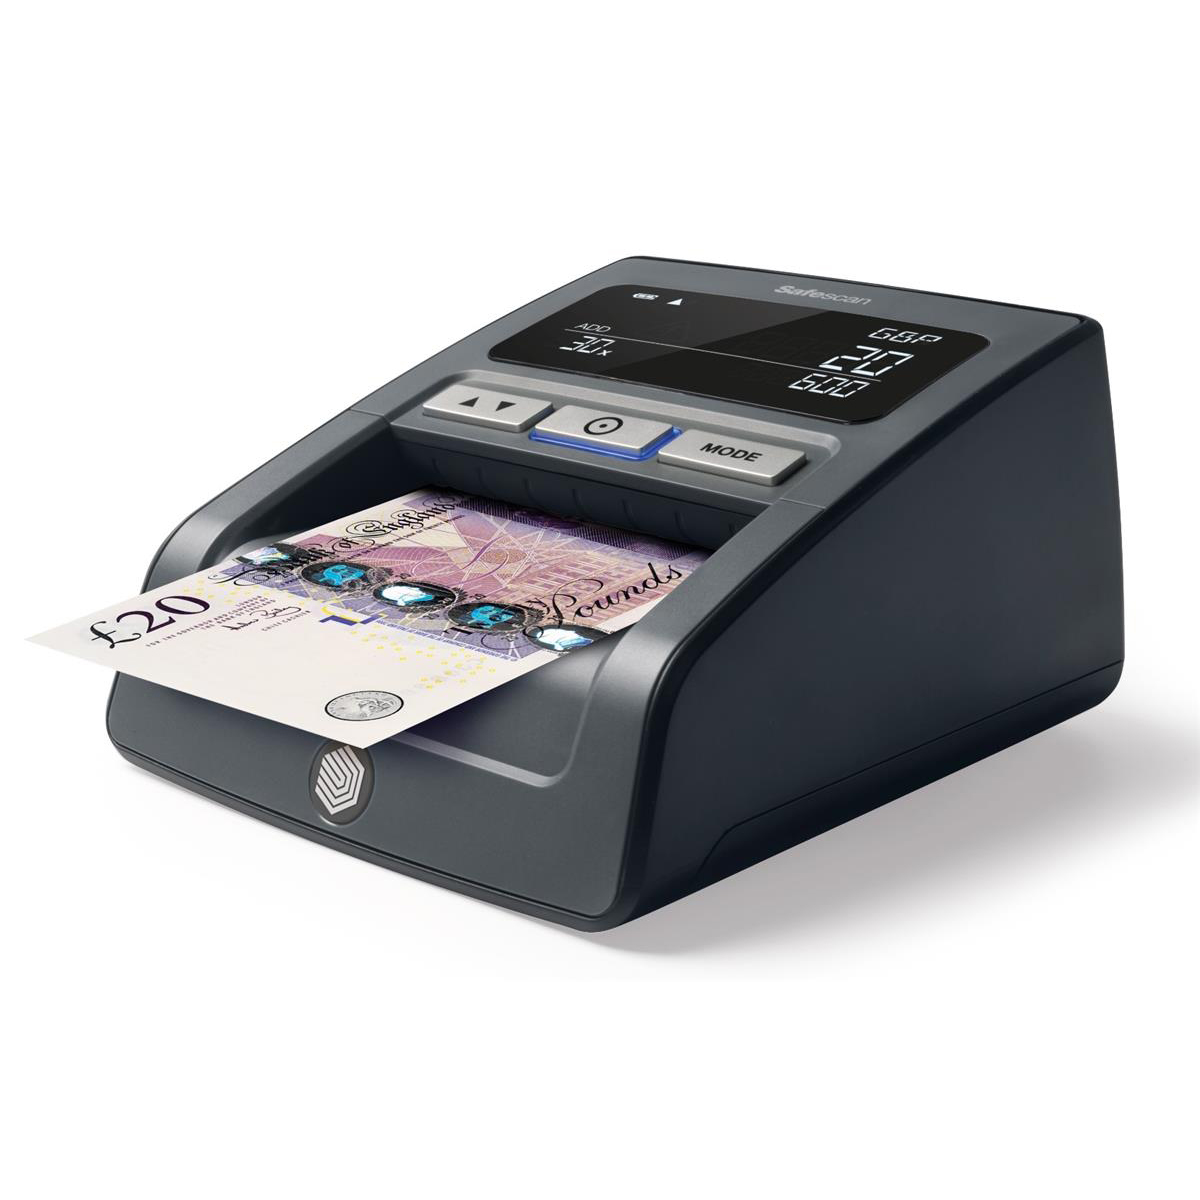 Cash Safescan 155-S Counterfeit Detector 0.62kg L159xW128xH83mm Black Ref 112-0529